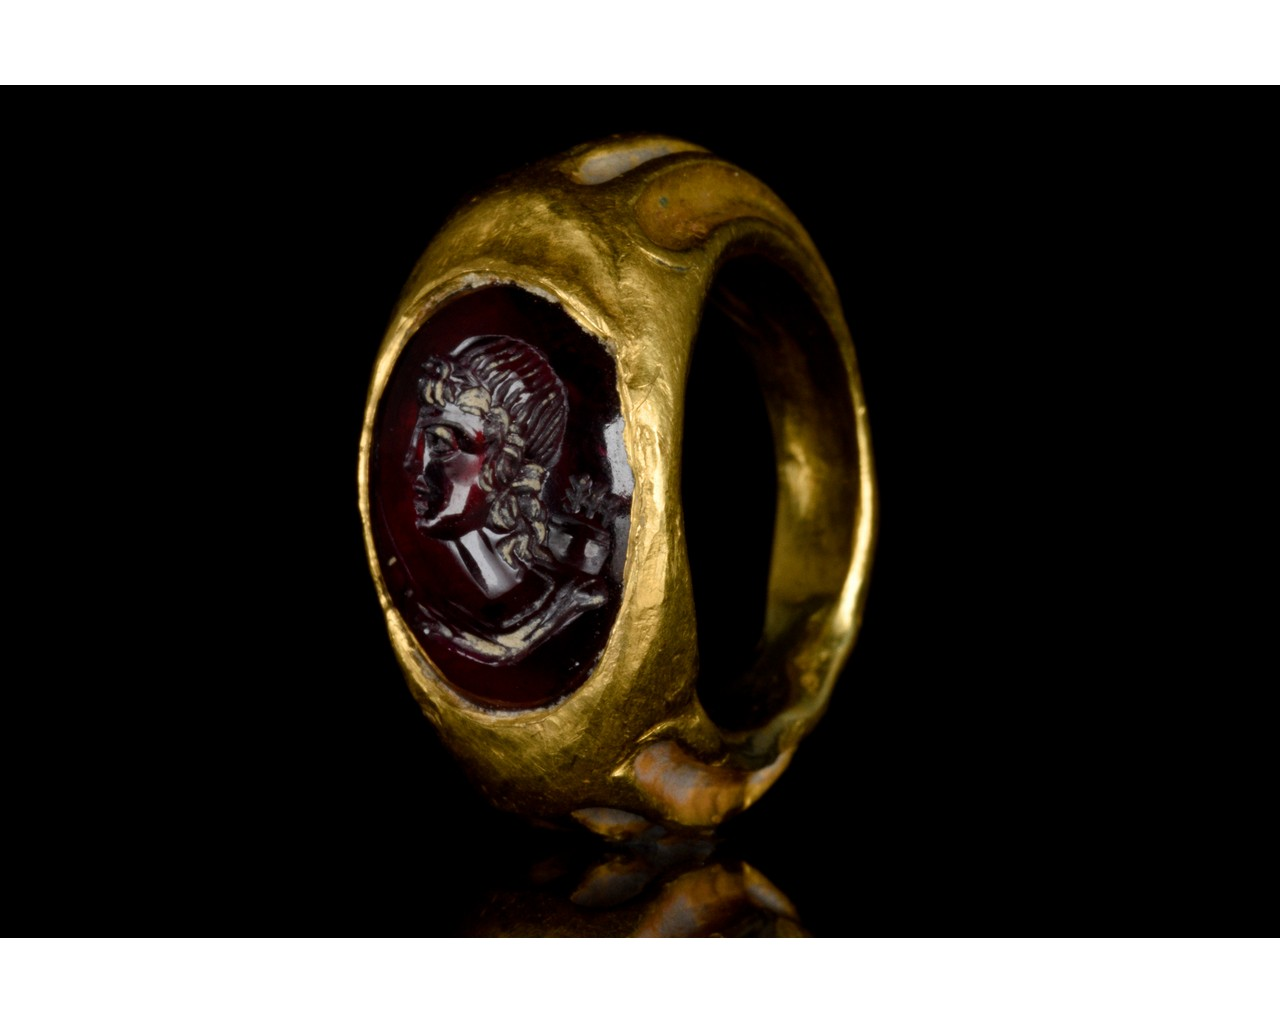 ROMAN GOLD AND GARNET INTAGLIO RING WITH DIANA - FULL REPORT